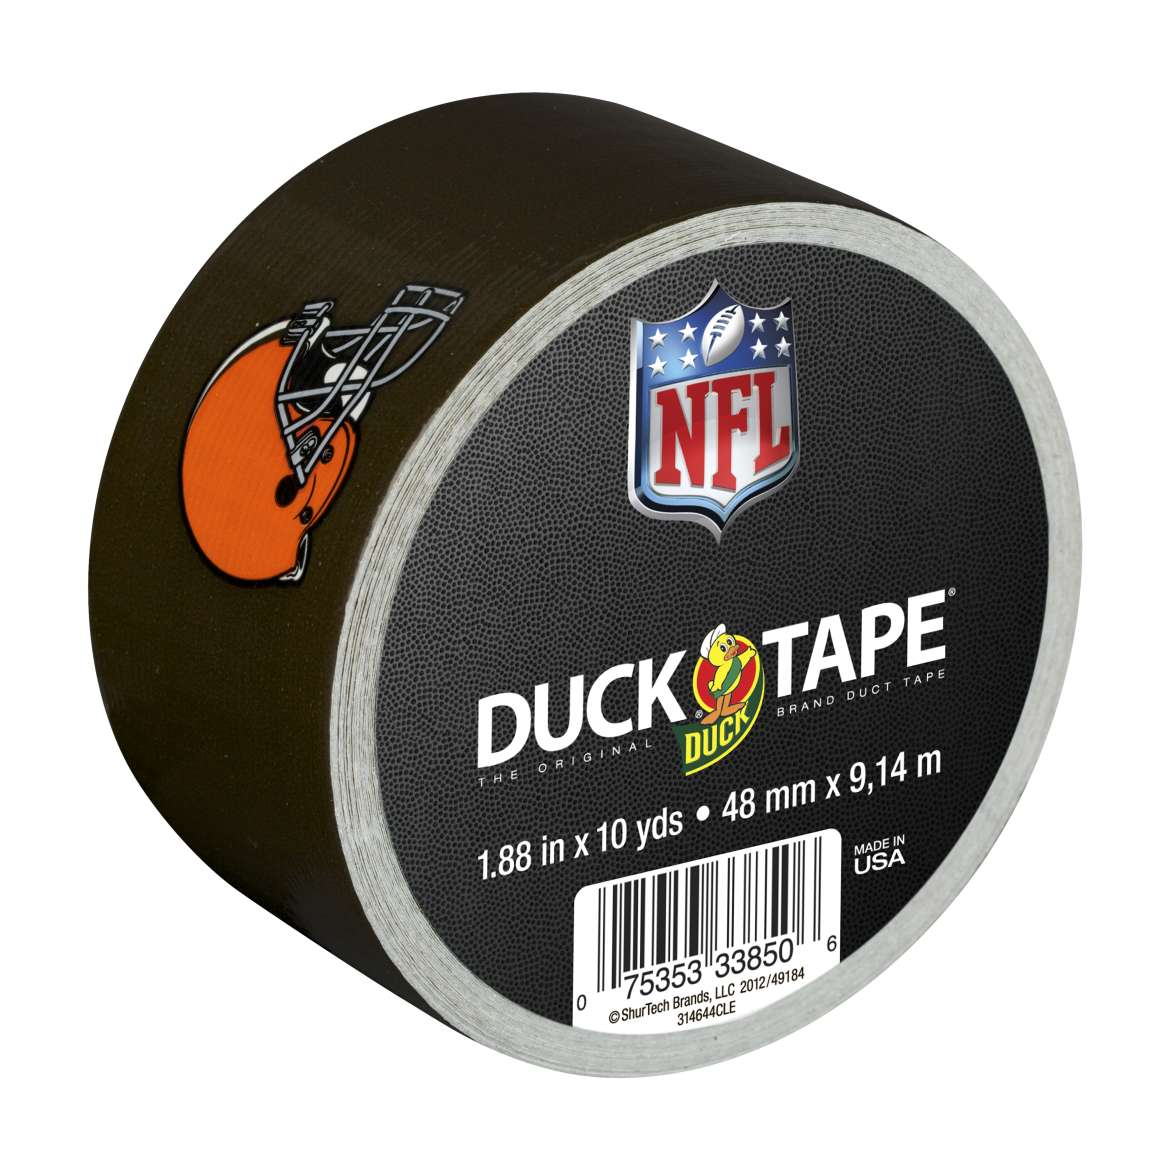 NFL Licensed Duck Tape Brand Duct Tape - Cleveland Browns, 1.88 in. x 10 yd.